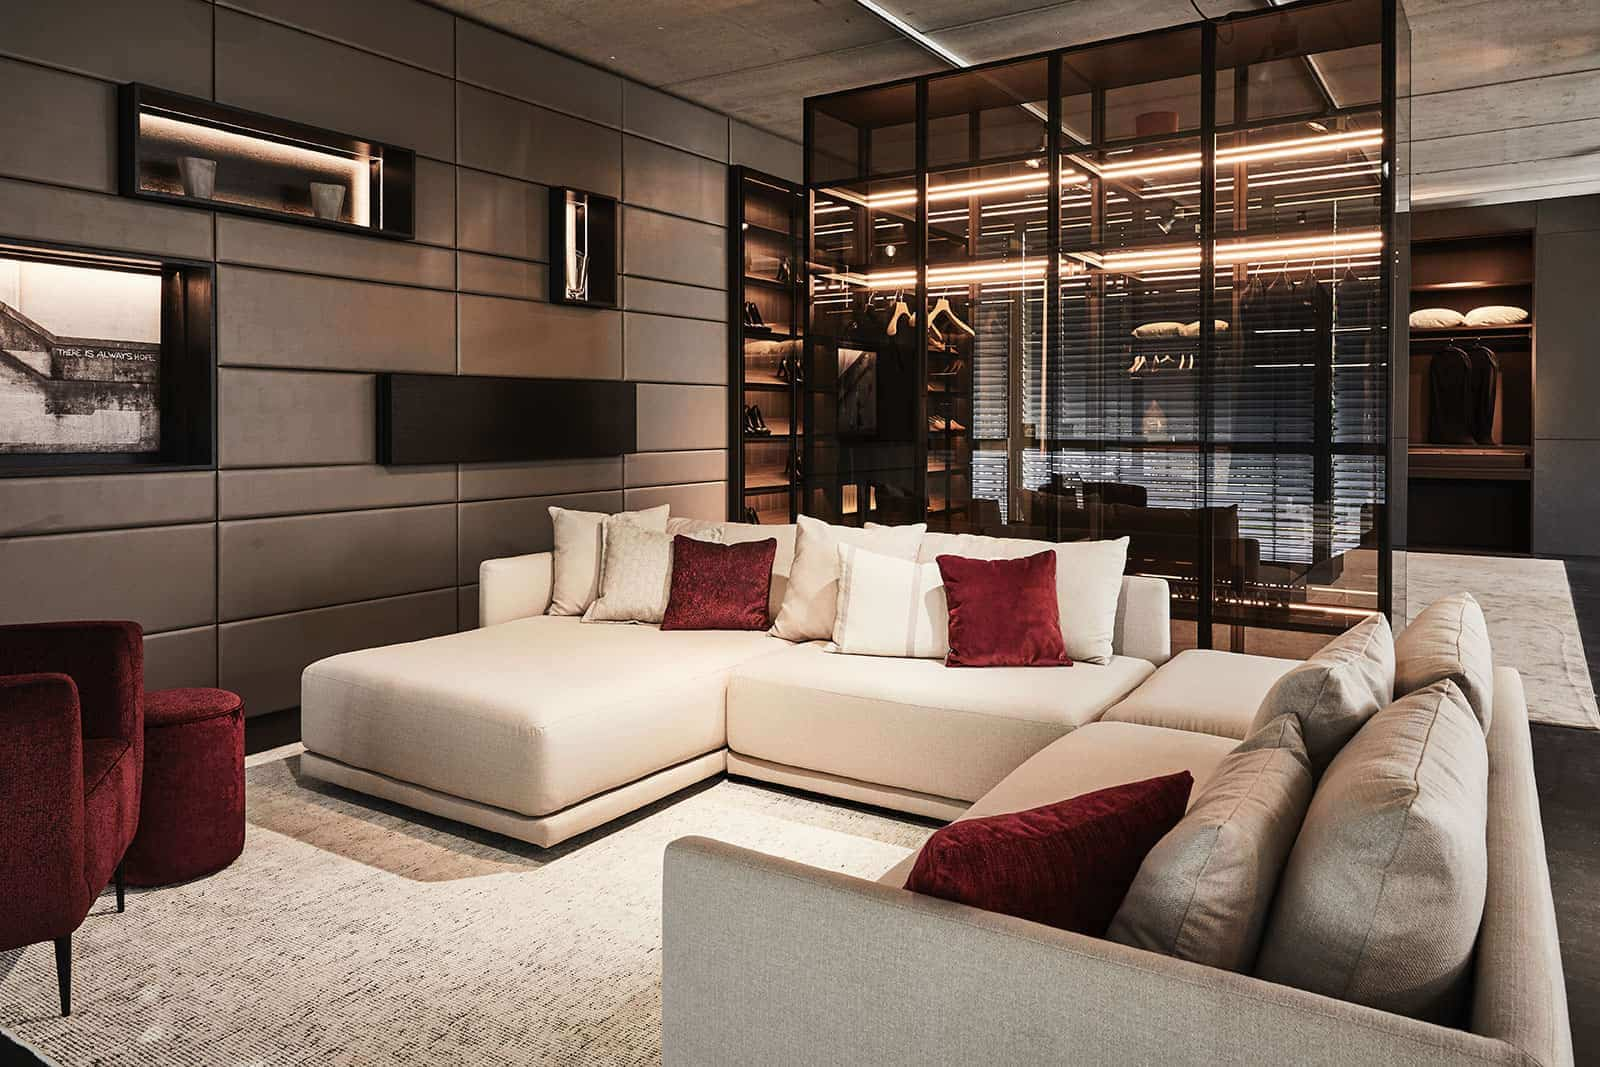 luxury bespoke furniture and home living solutions by eggersmann